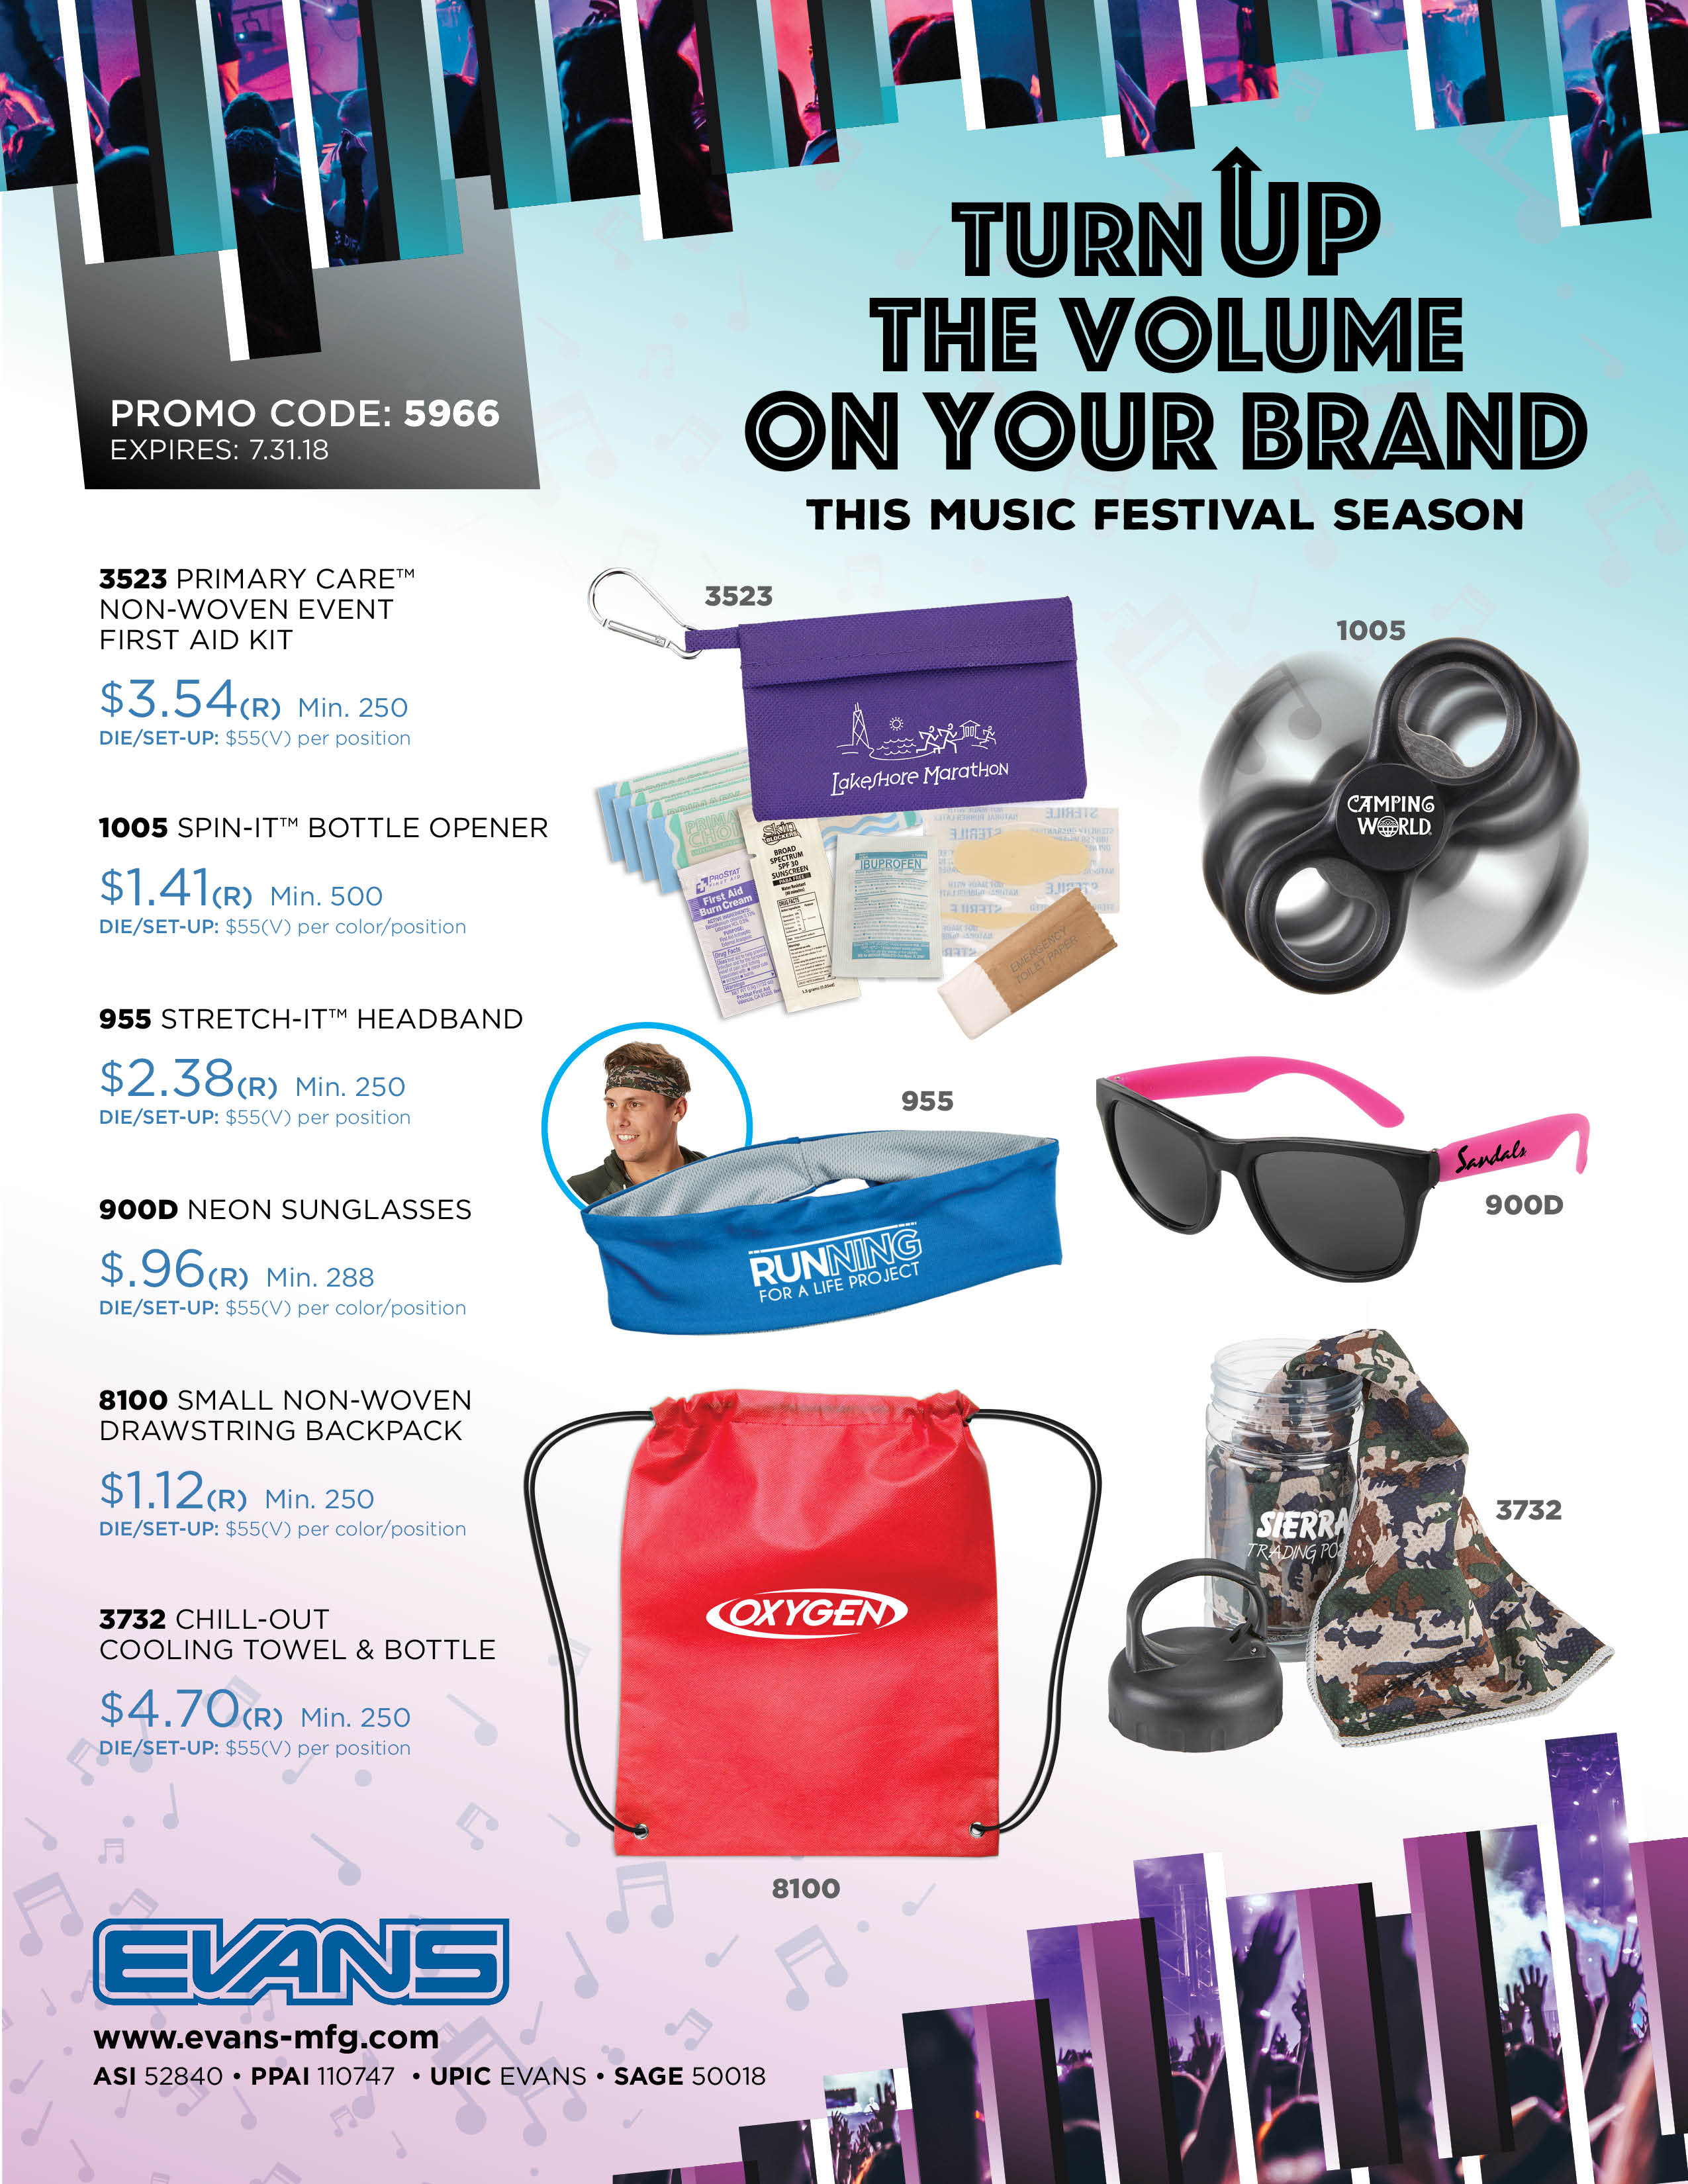 Music Festivals - Turn Up the Volume on Your Brand